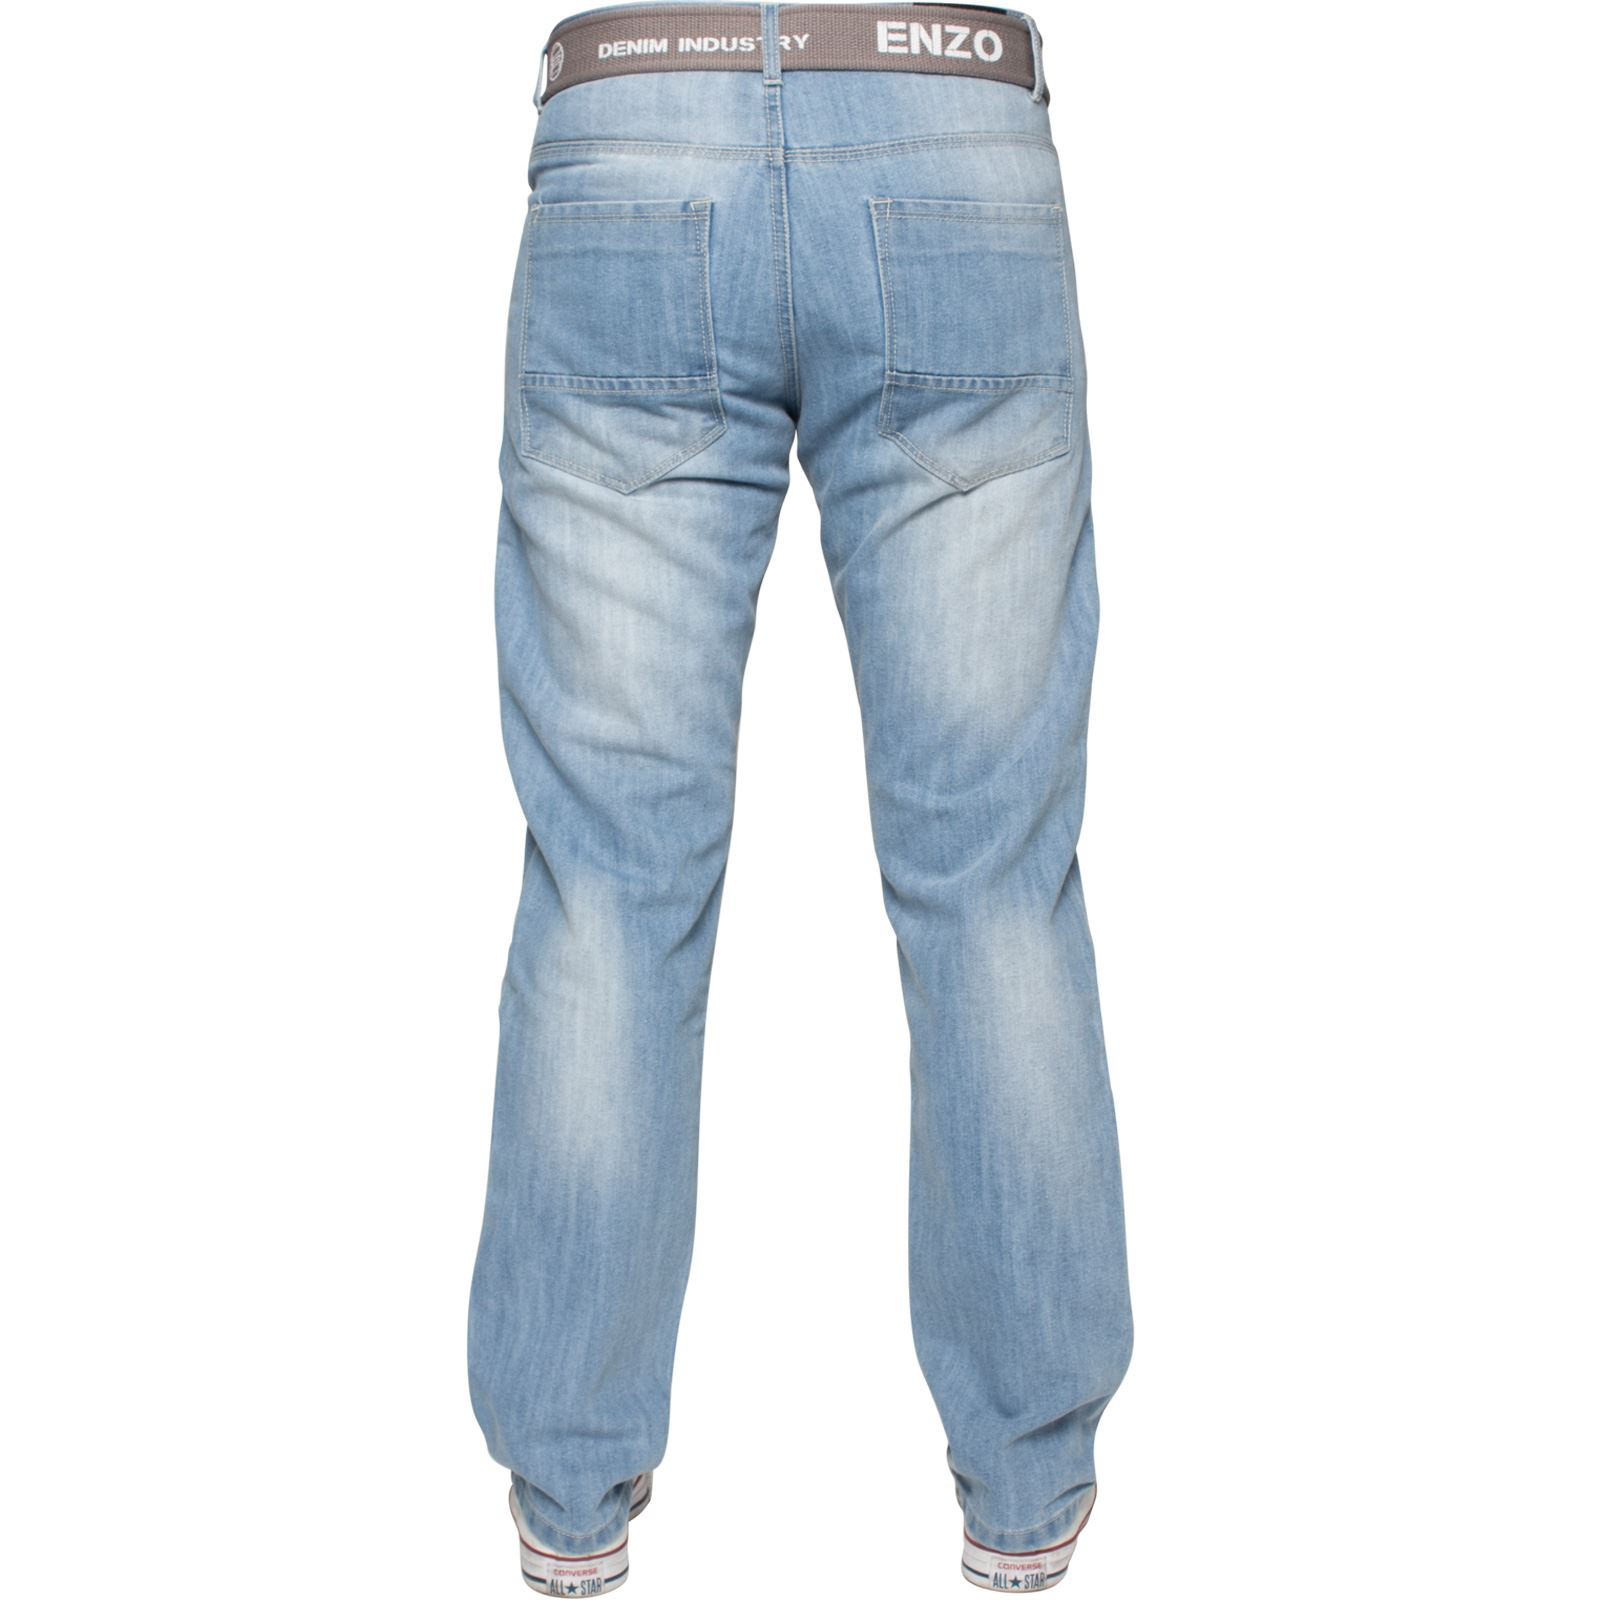 Enzo-Mens-Designer-Jeans-Regular-Fit-Denim-Pants-Big-Tall-All-Waist-Sizes thumbnail 18